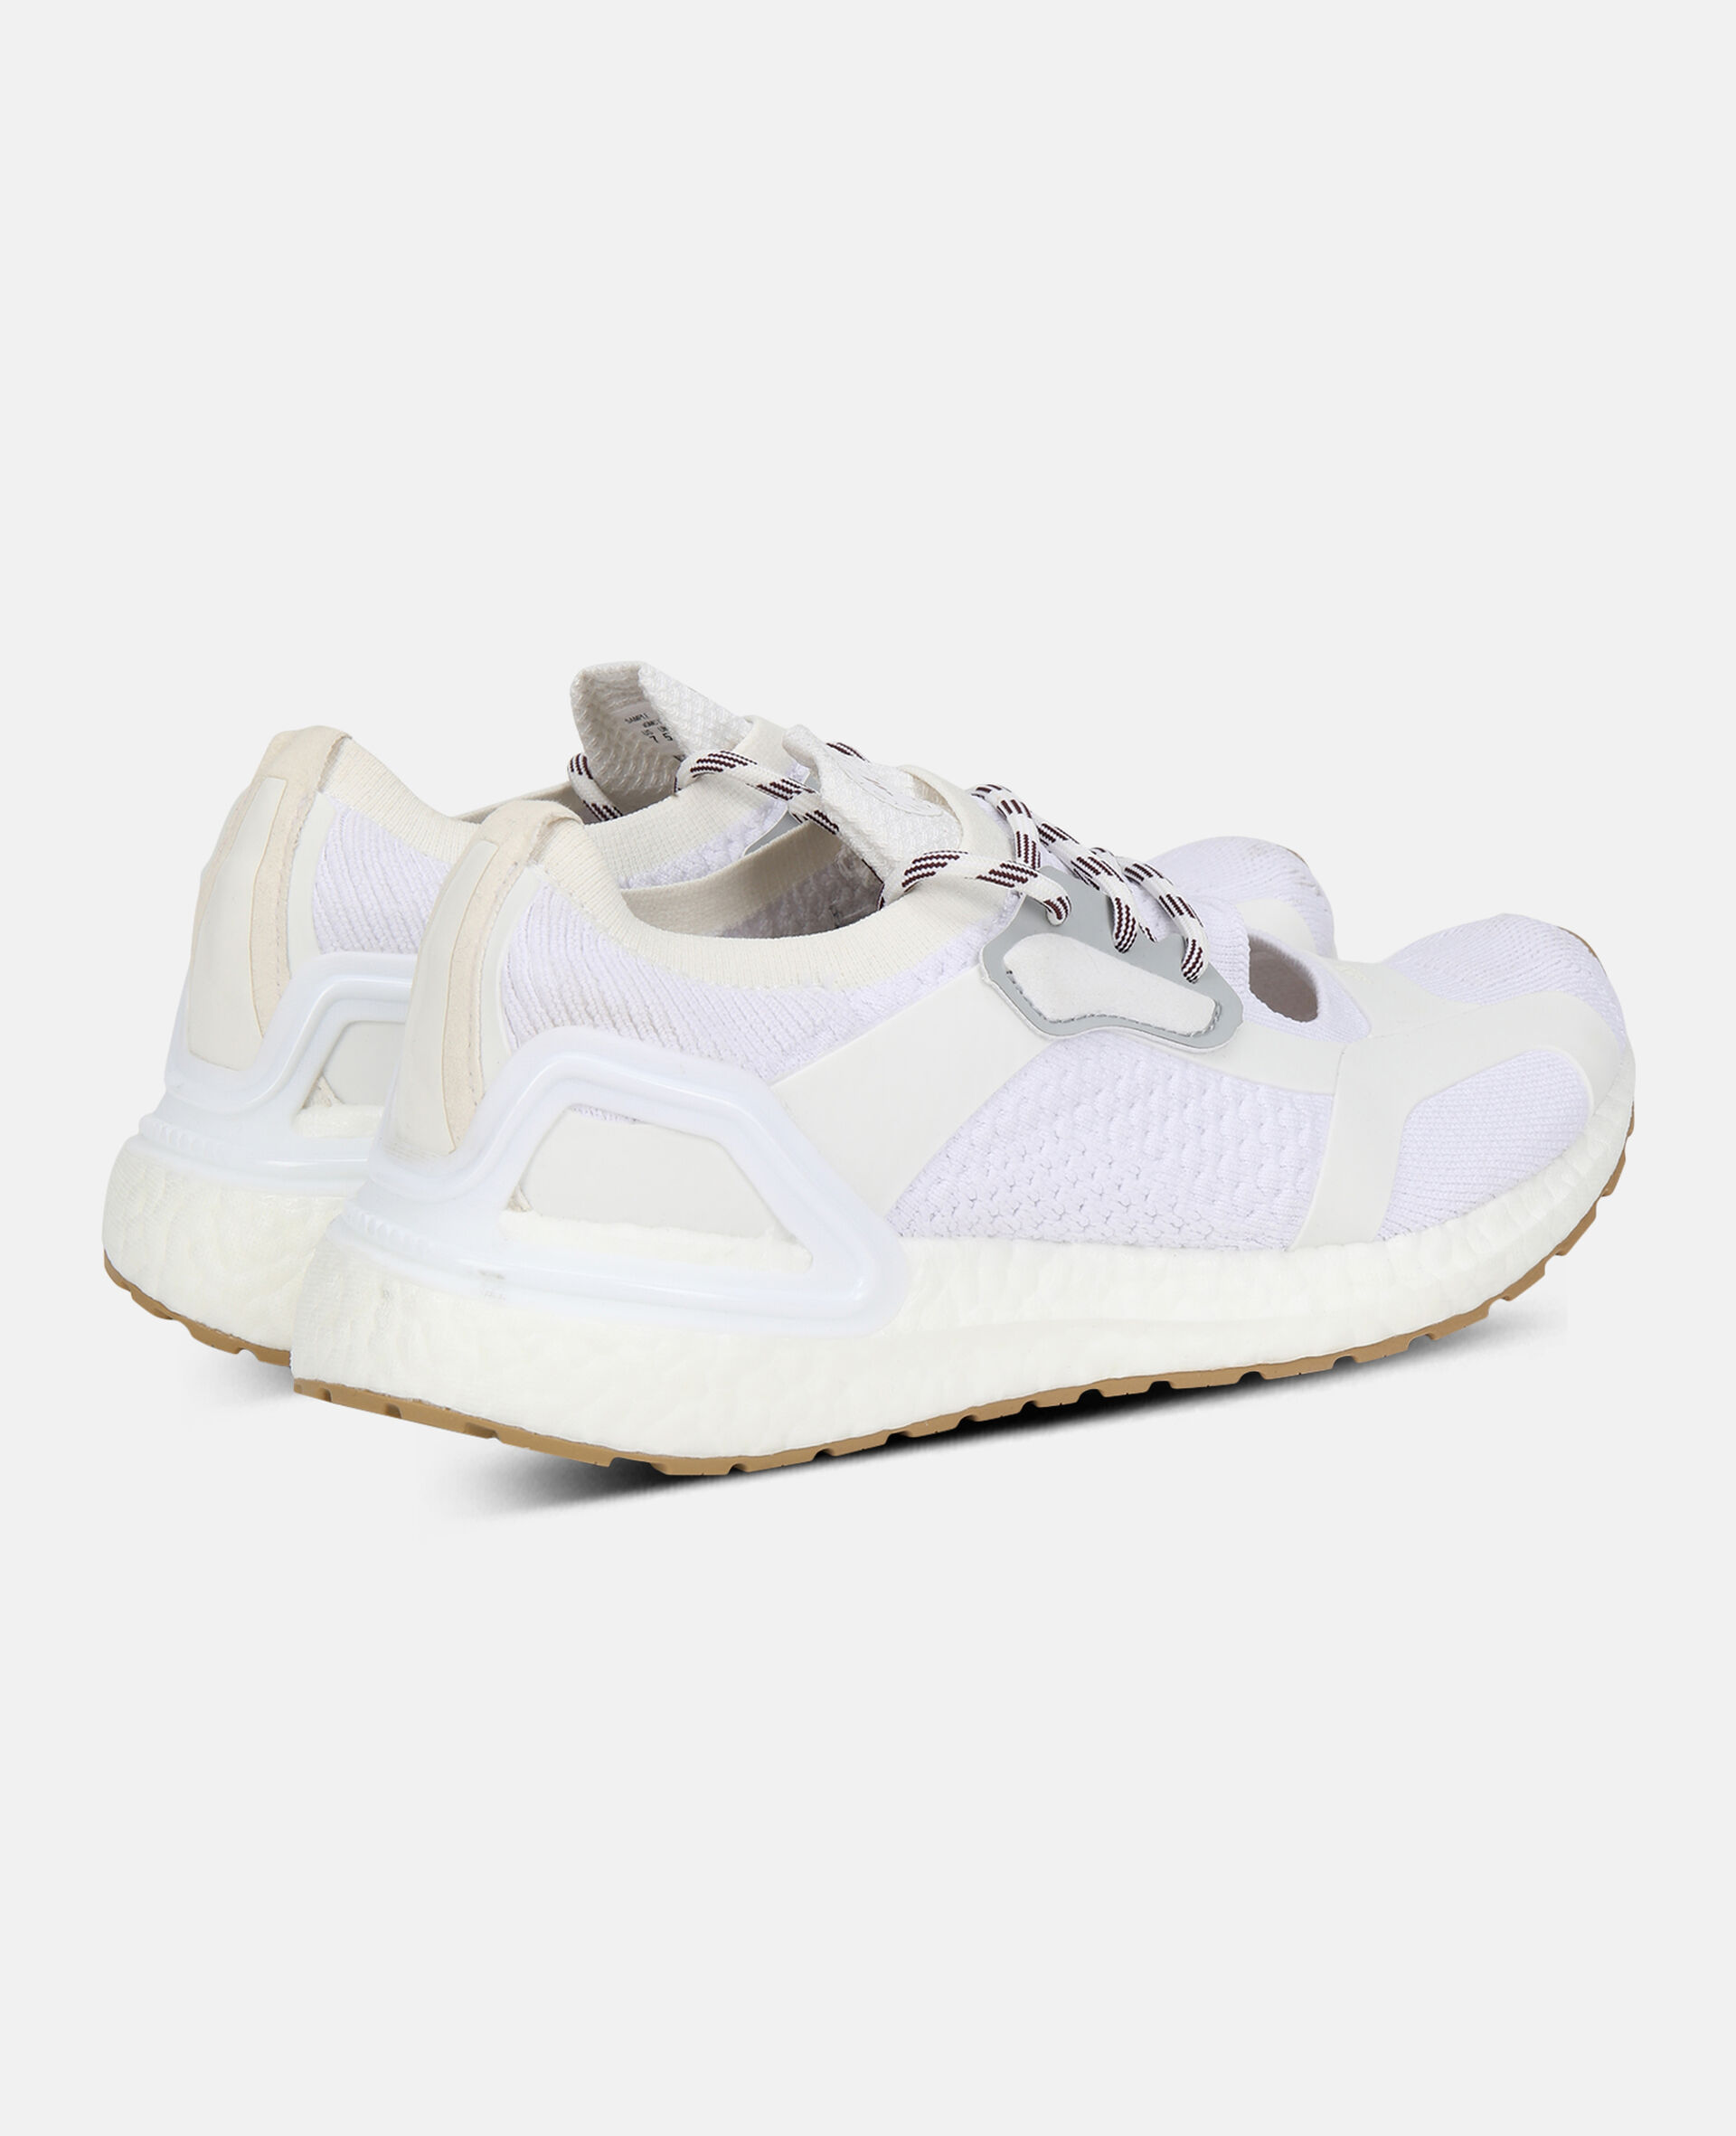 White Ultraboost Sneakers-White-large image number 4